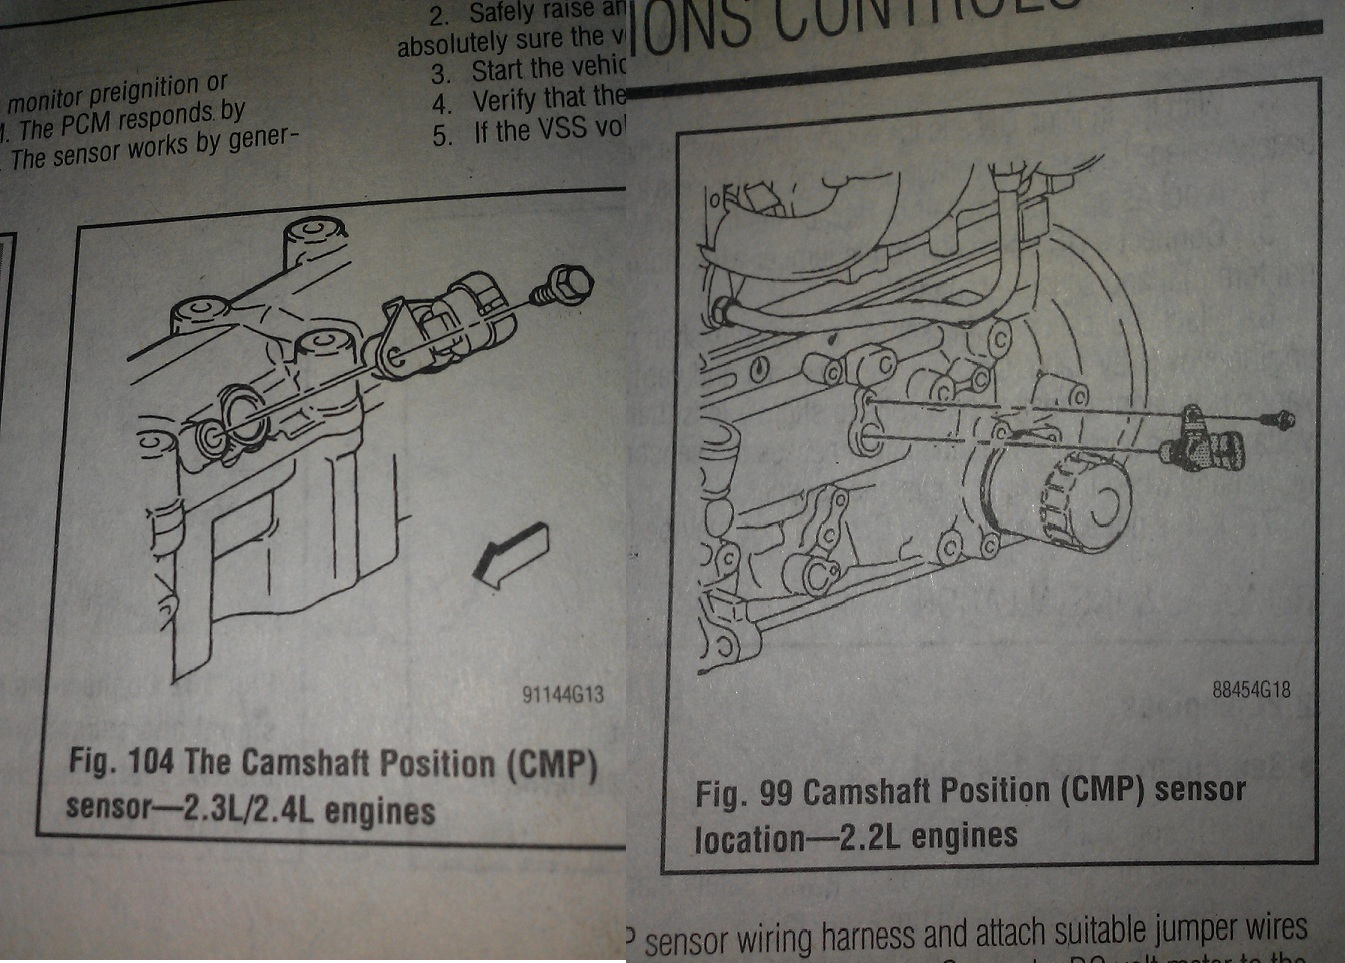 Where Is The Camshaft Positioning Sensor Located 2005 Pontiac Sunfire 4 2l Engine Diagram